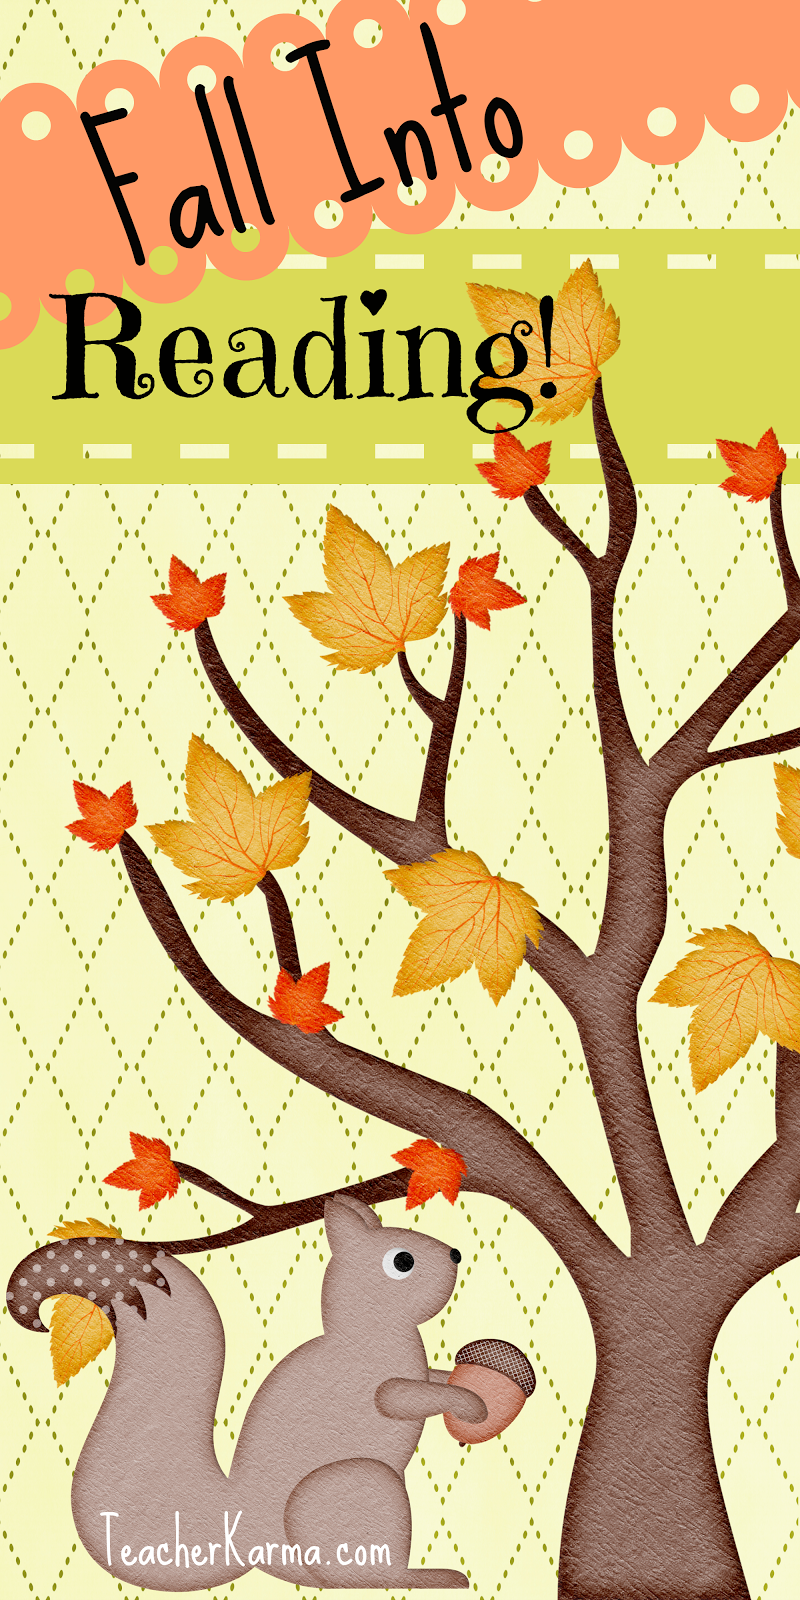 Image result for fall into reading clipart